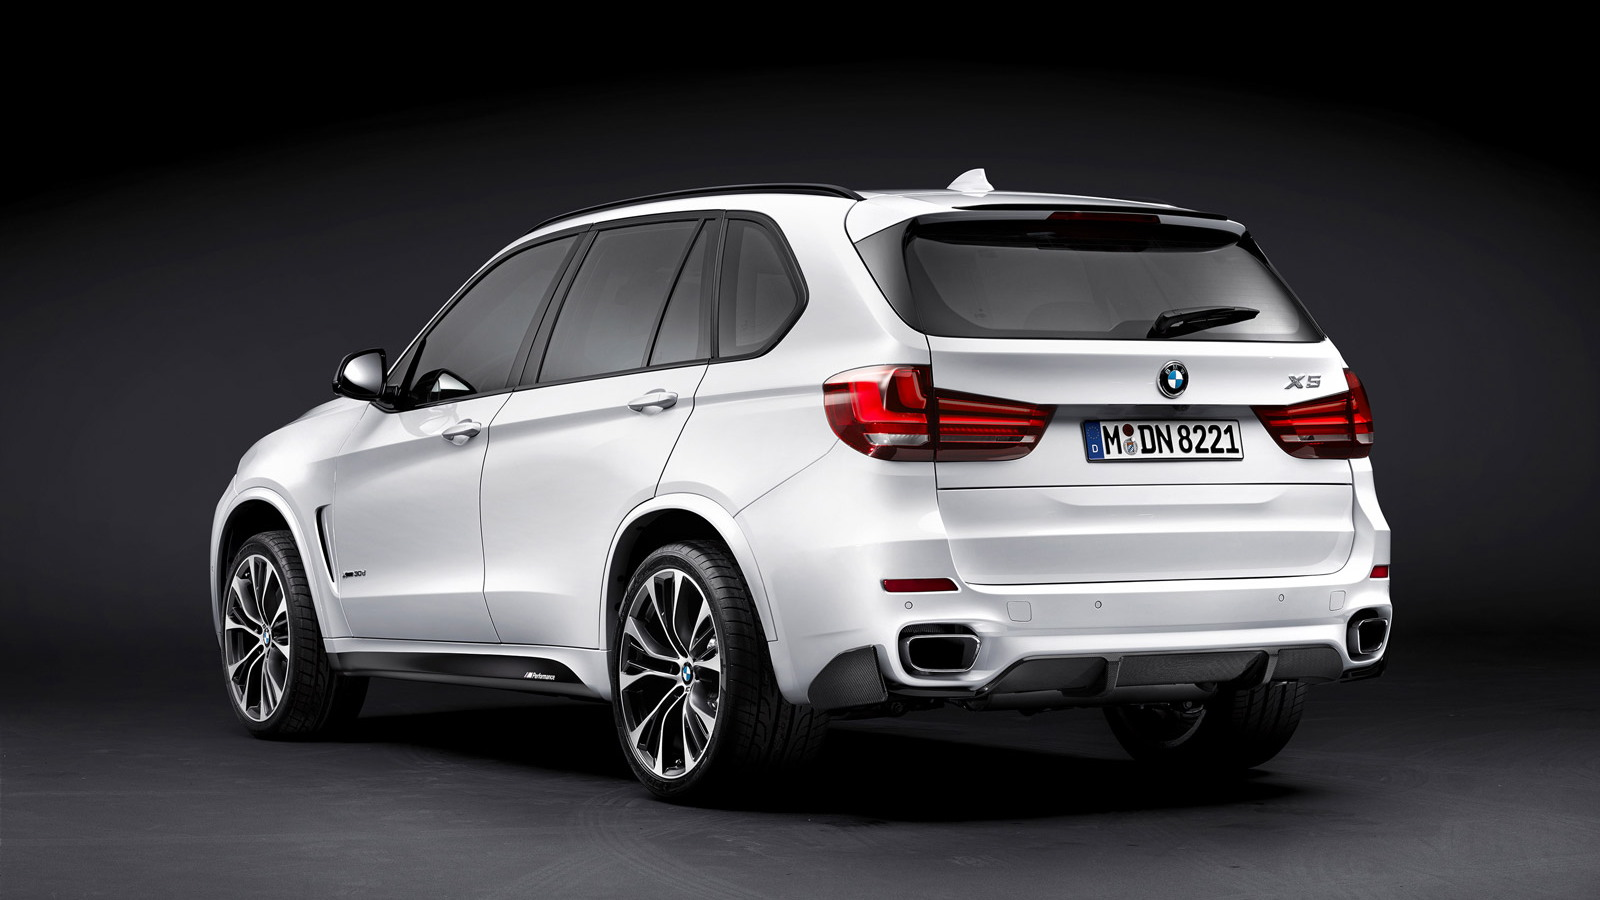 2014 BMW X5 equipped with M Performance parts